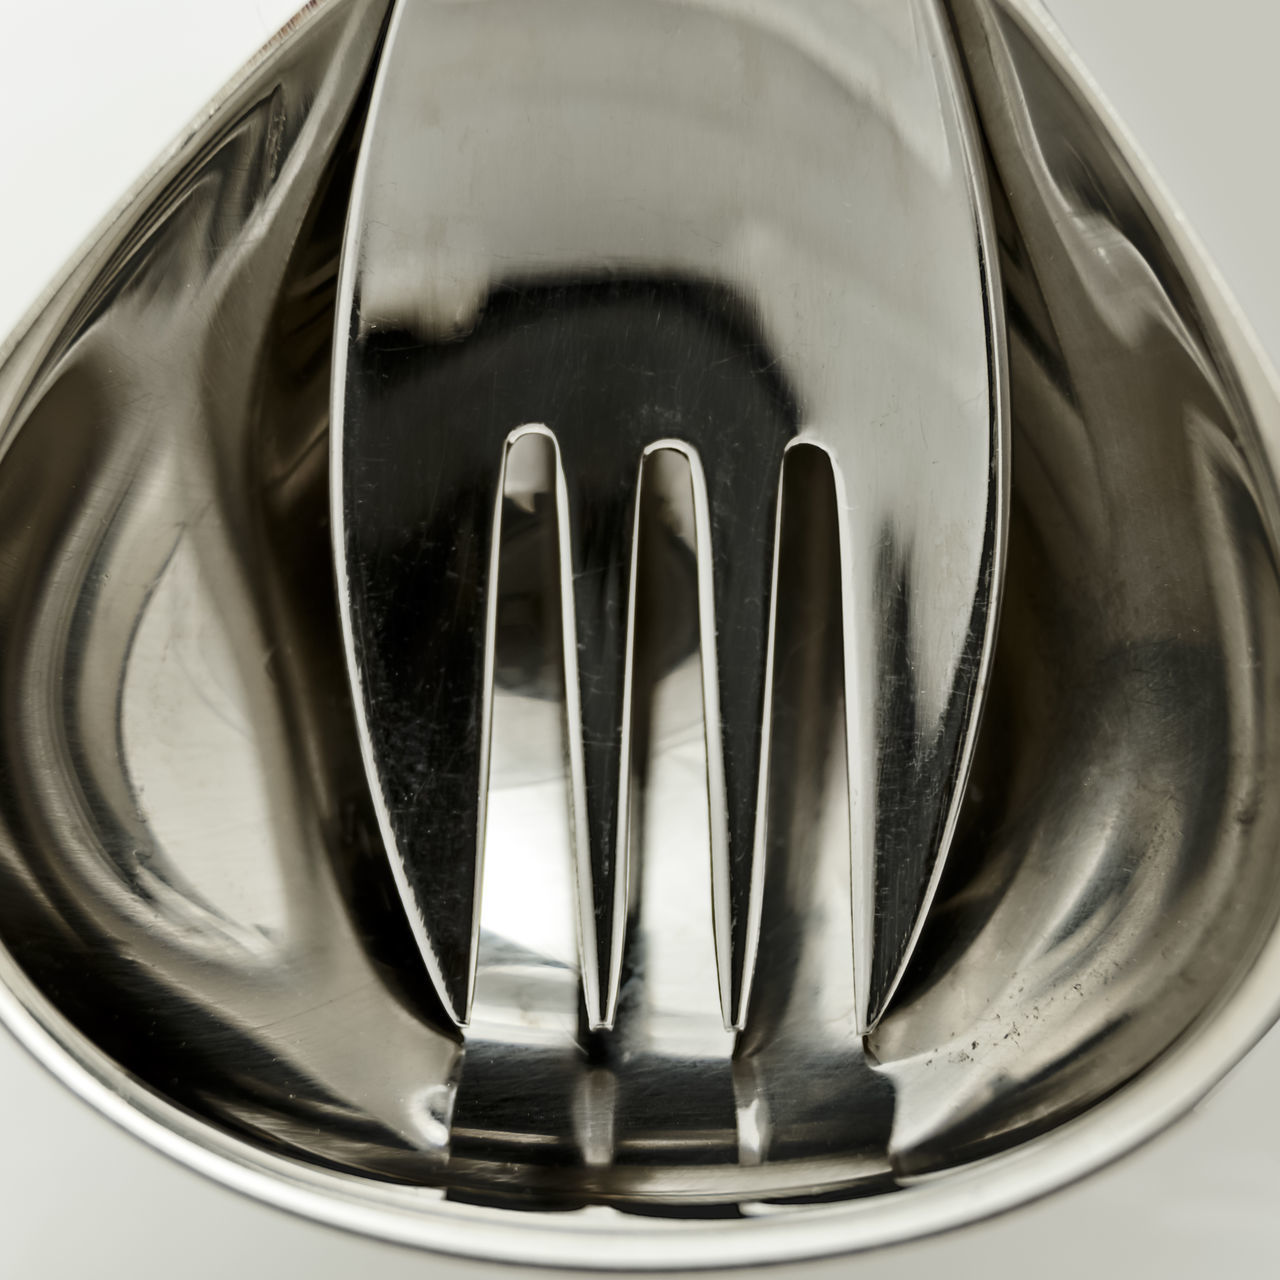 Hardware Abstract Close-up Cutlery Designer Tablew Ladle Salad Servers Studio Shot Sılver Visual Feast White Background